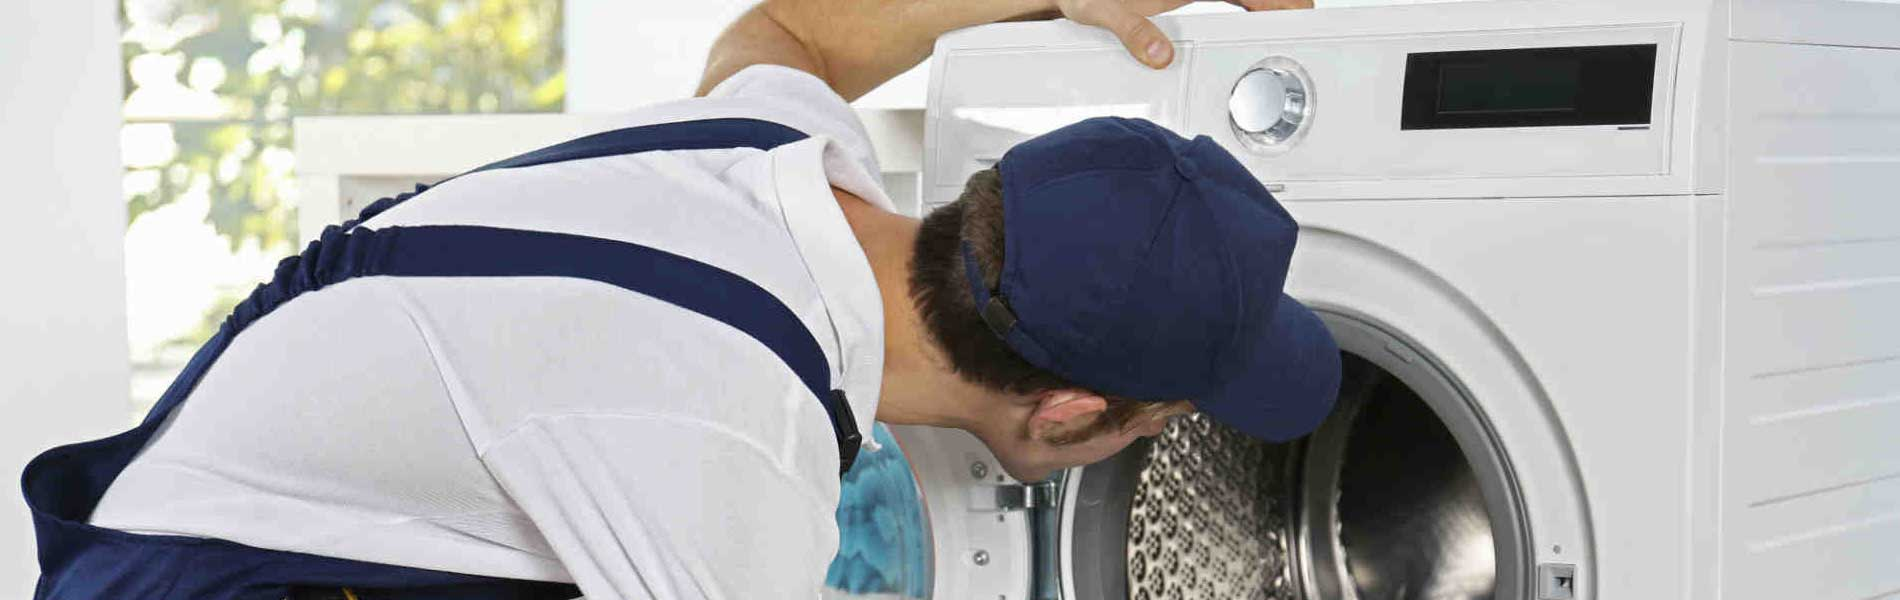 Godrej Washing Machine Repair in venkatamangalam